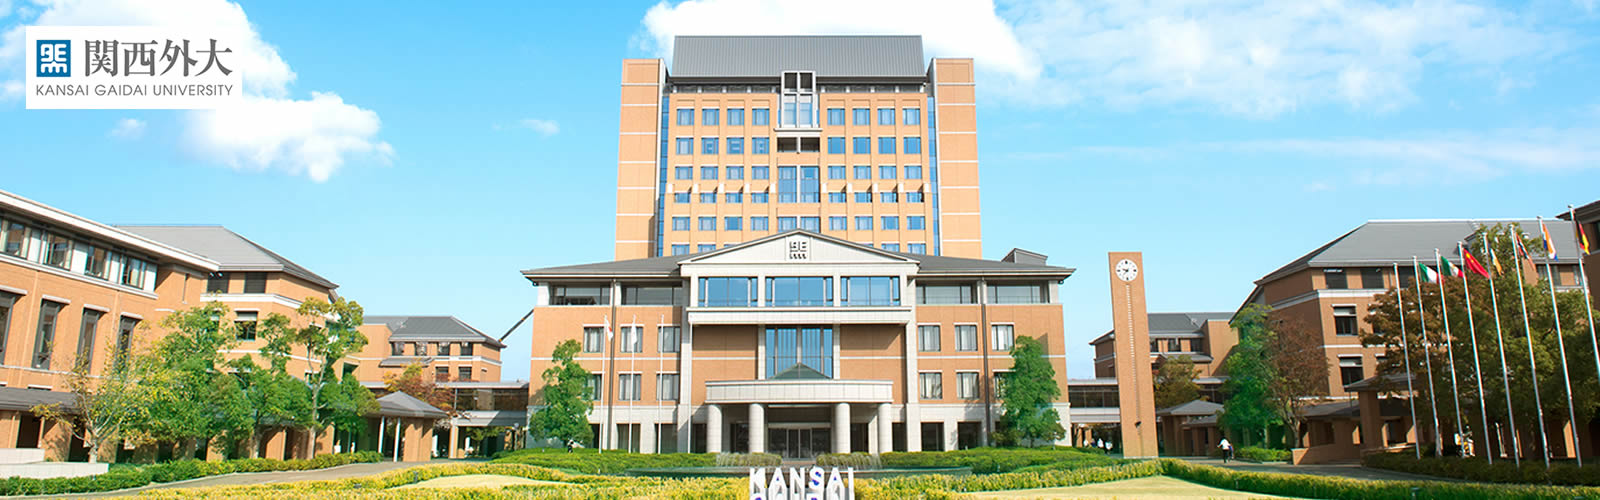 Kansai Gaidai University